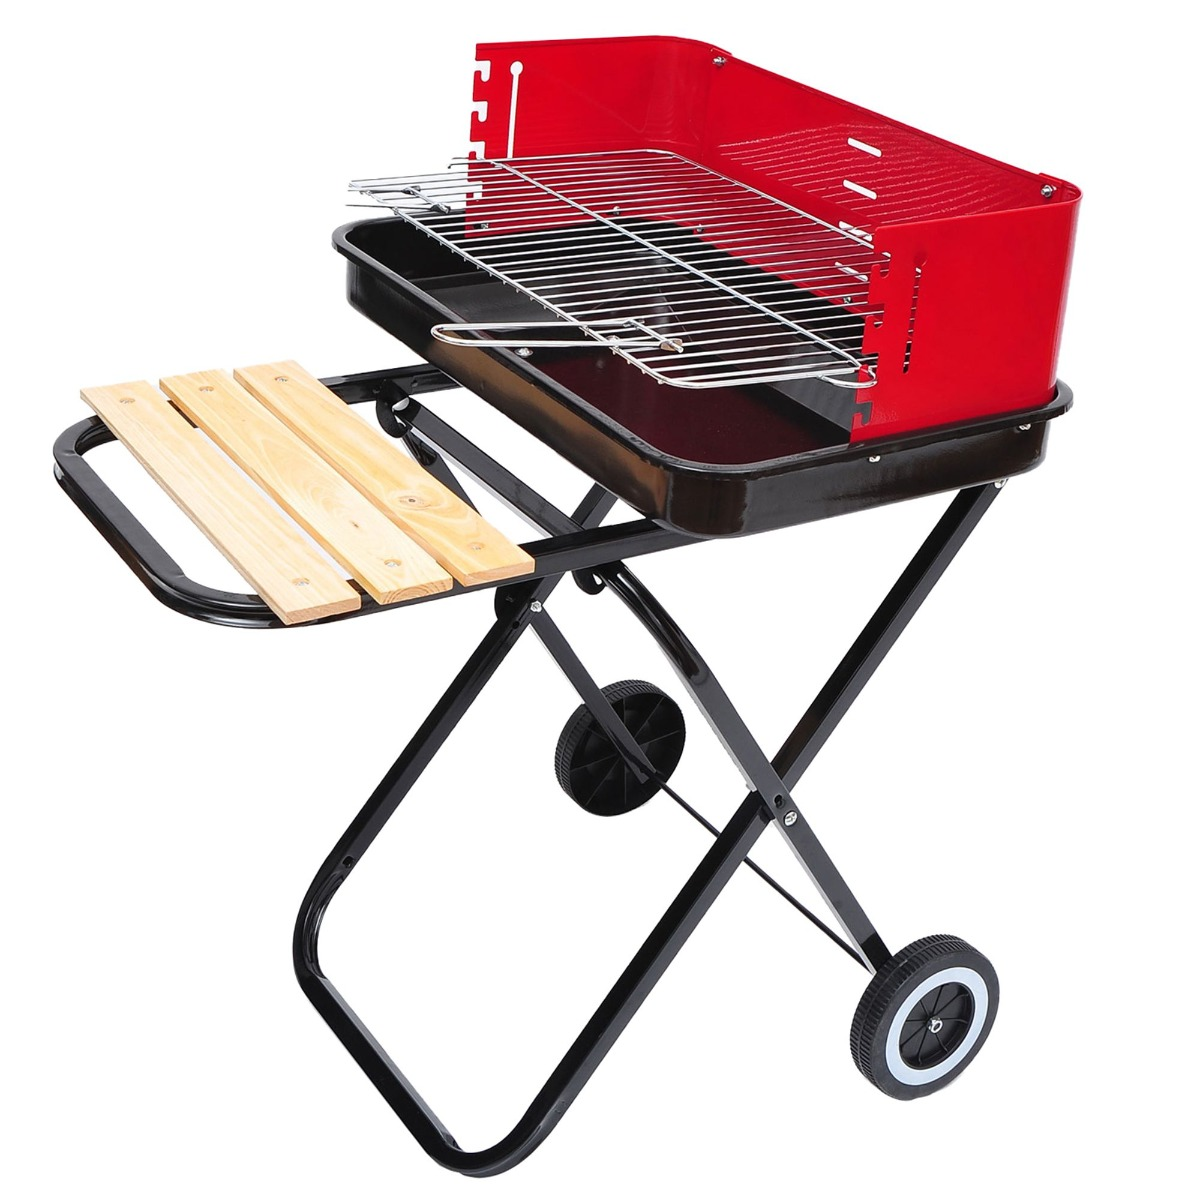 Outsunny Foldable Charcoal Trolley Barbecue Grill W/ Wheels-Red & Black